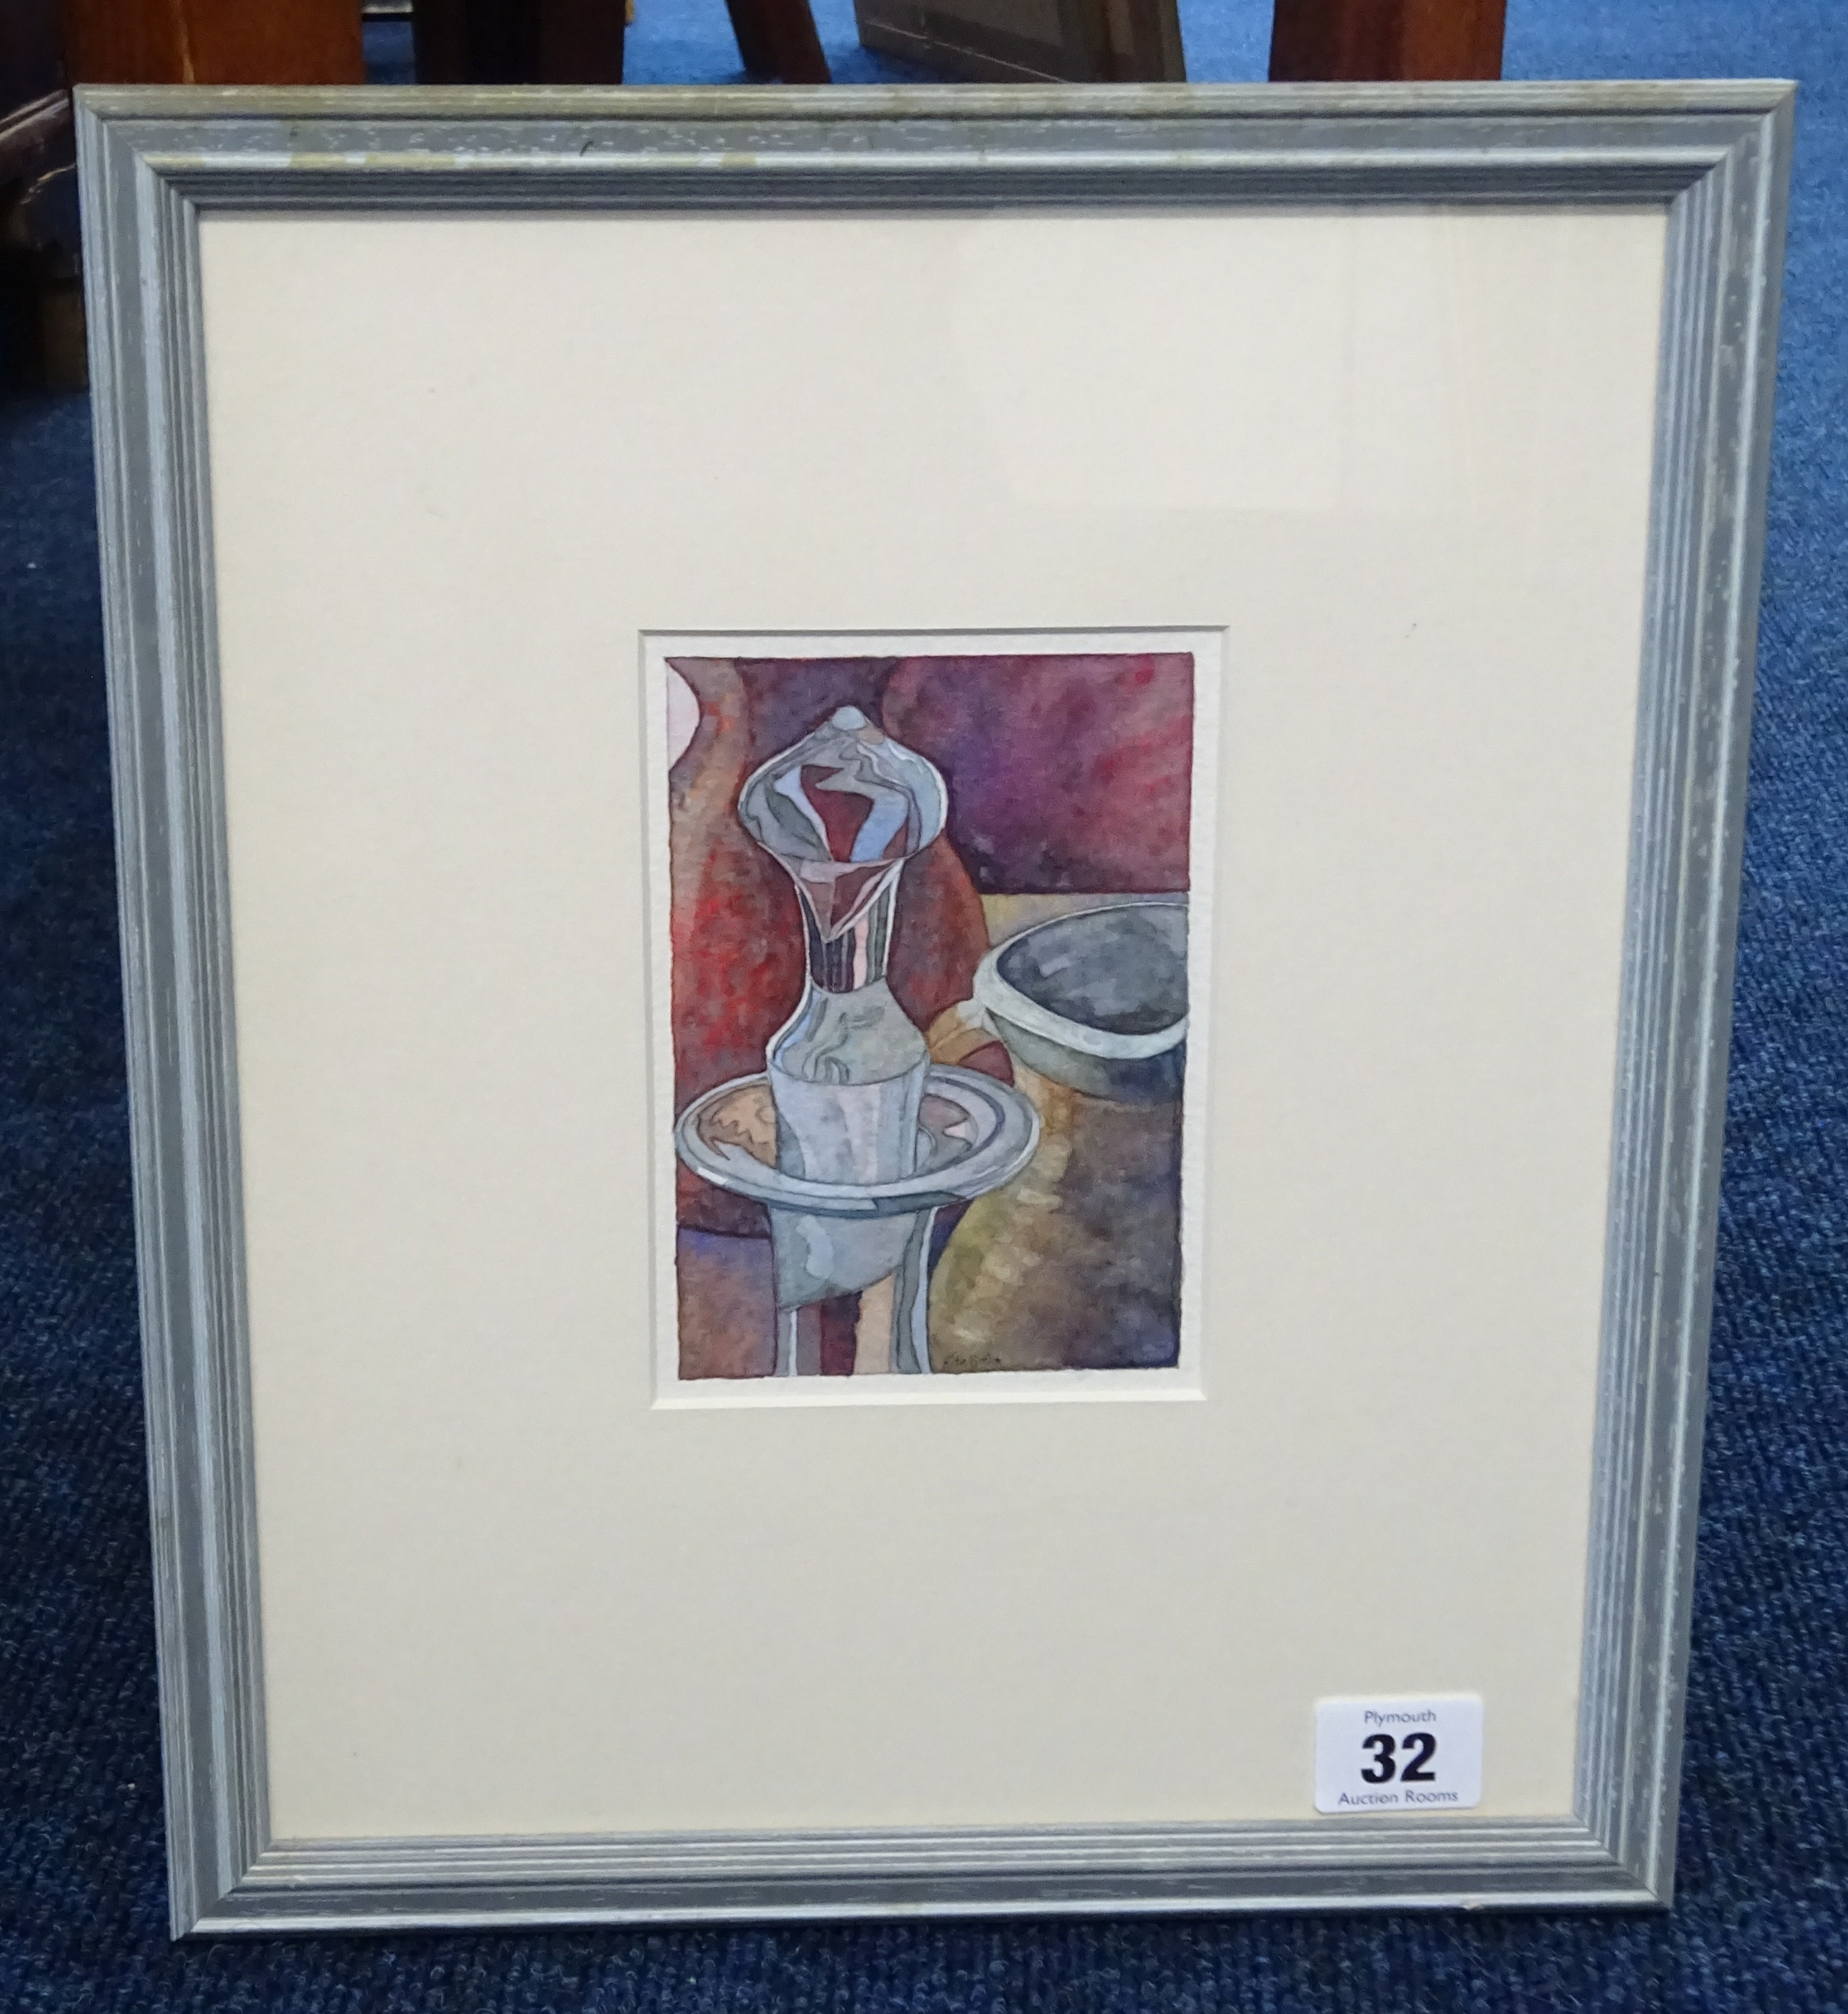 Lot 032 - Rita Smith, watercolour 'Decanter Stopper', signed, framed and glazed, 13cm x 8.50cm.